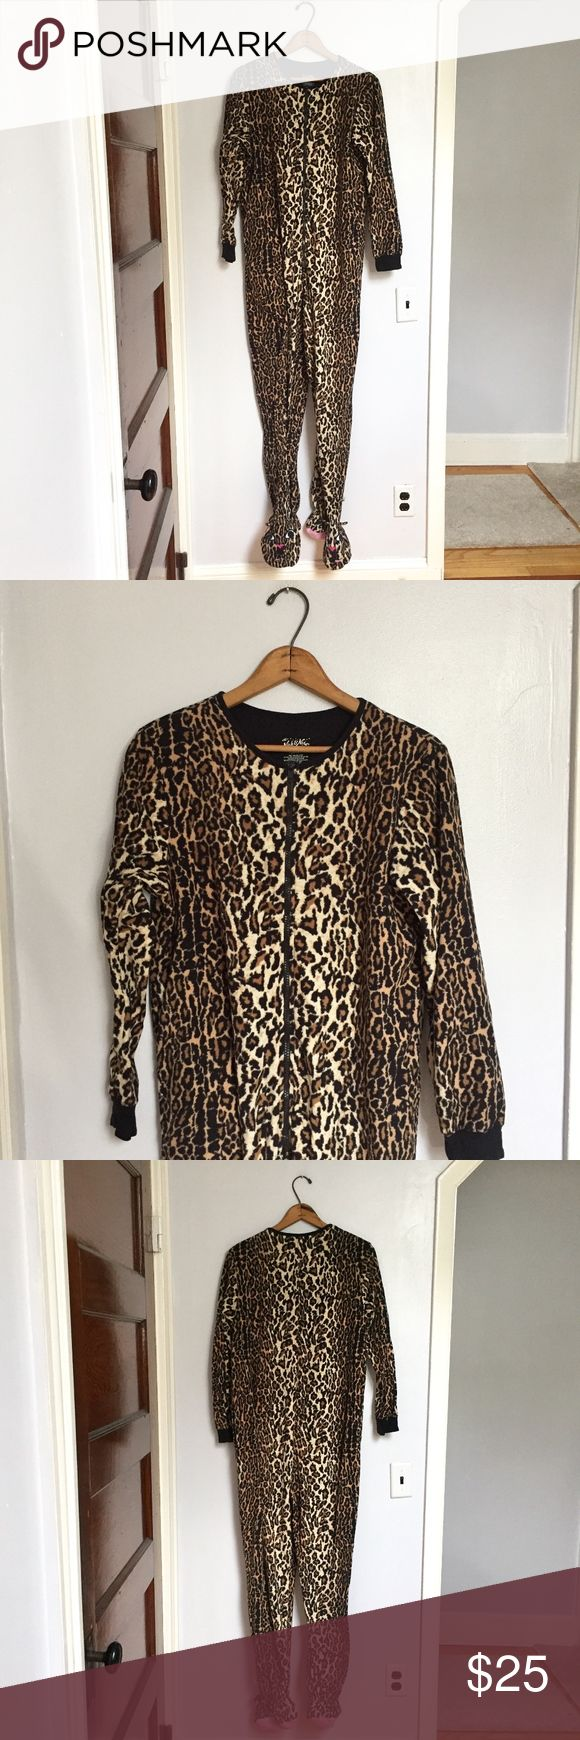 [Nick & Nora] cheetah print cat adult onesie -Size: women's M -Condition: excellent -Color: brown, black, cream, pink -Pockets: yes -Closure: zips up front -Style: cheetah foot pajamas with cat feet -Extra Notes: -B11  Bundling is fun, check out my other items! My home is smoke free. No trades, holds, modeling, or negotiations in the comments. Nick & Nora Intimates & Sleepwear Pajamas